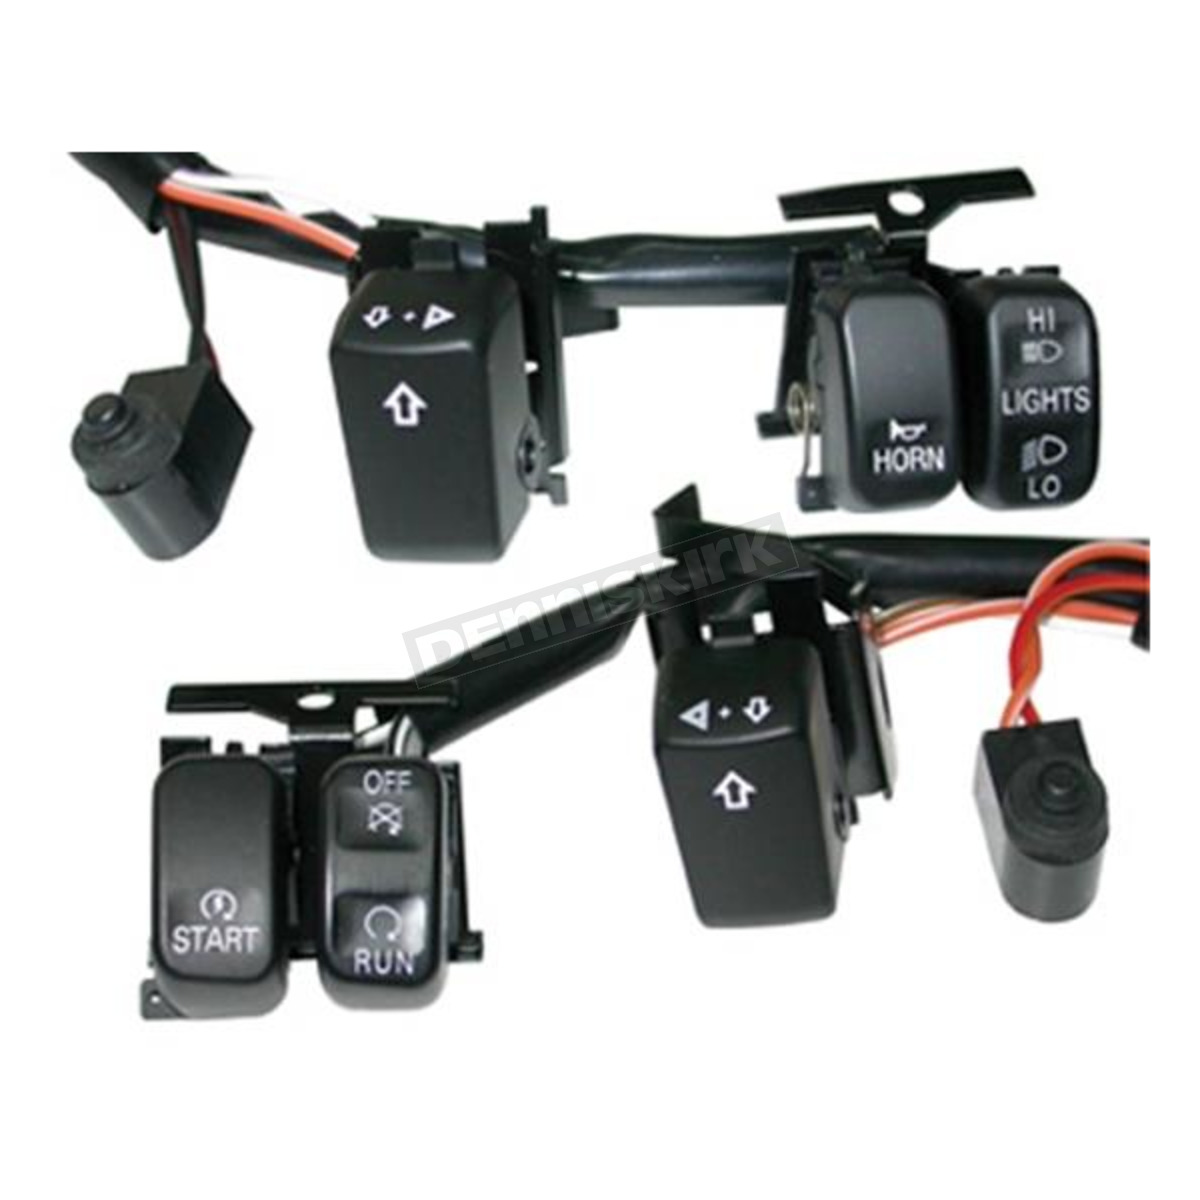 v-factor handlebar switch wiring kit w/black switches - 15152